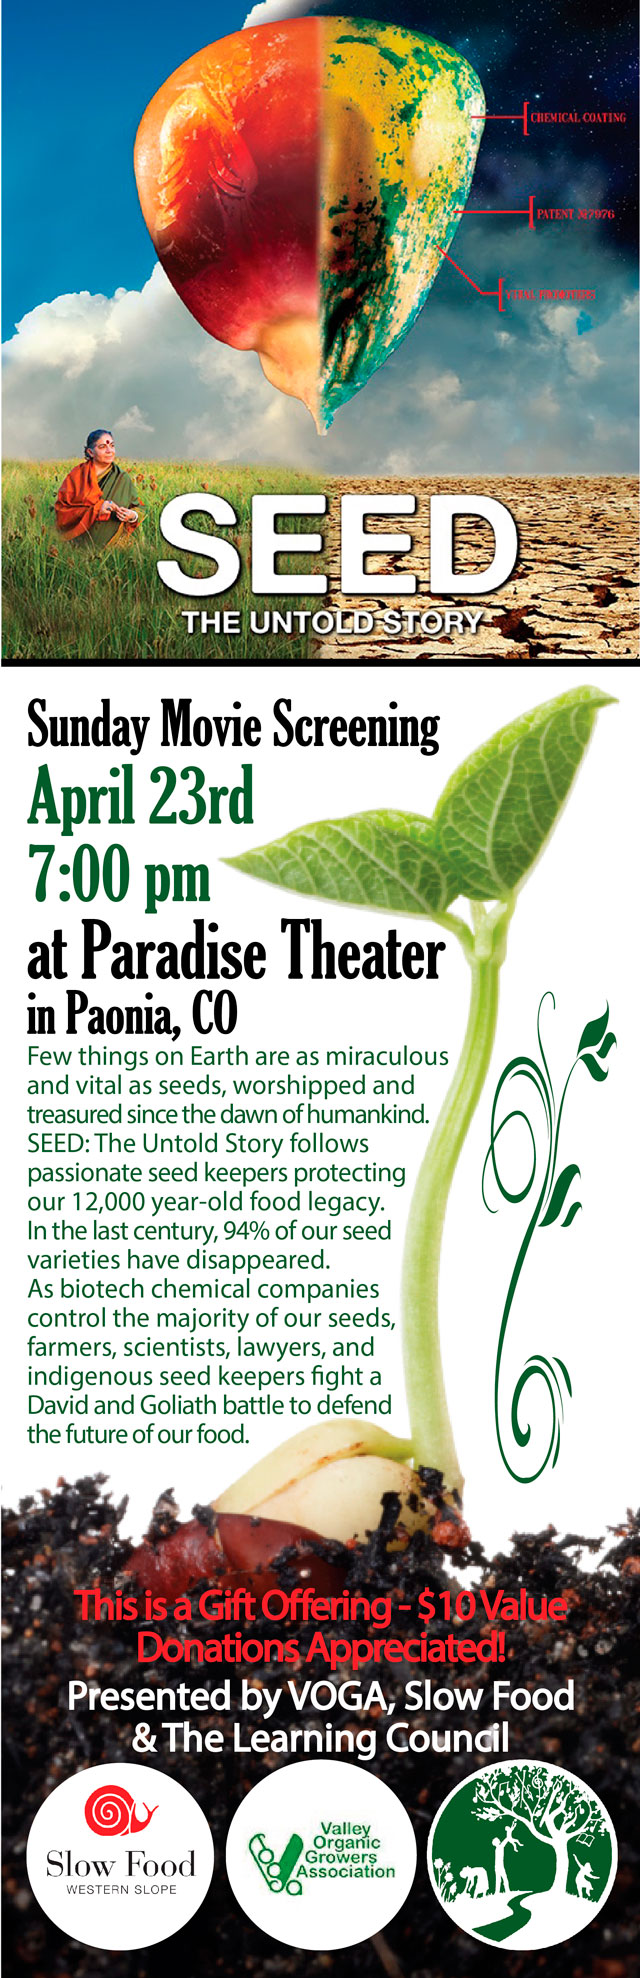 Seed poster image